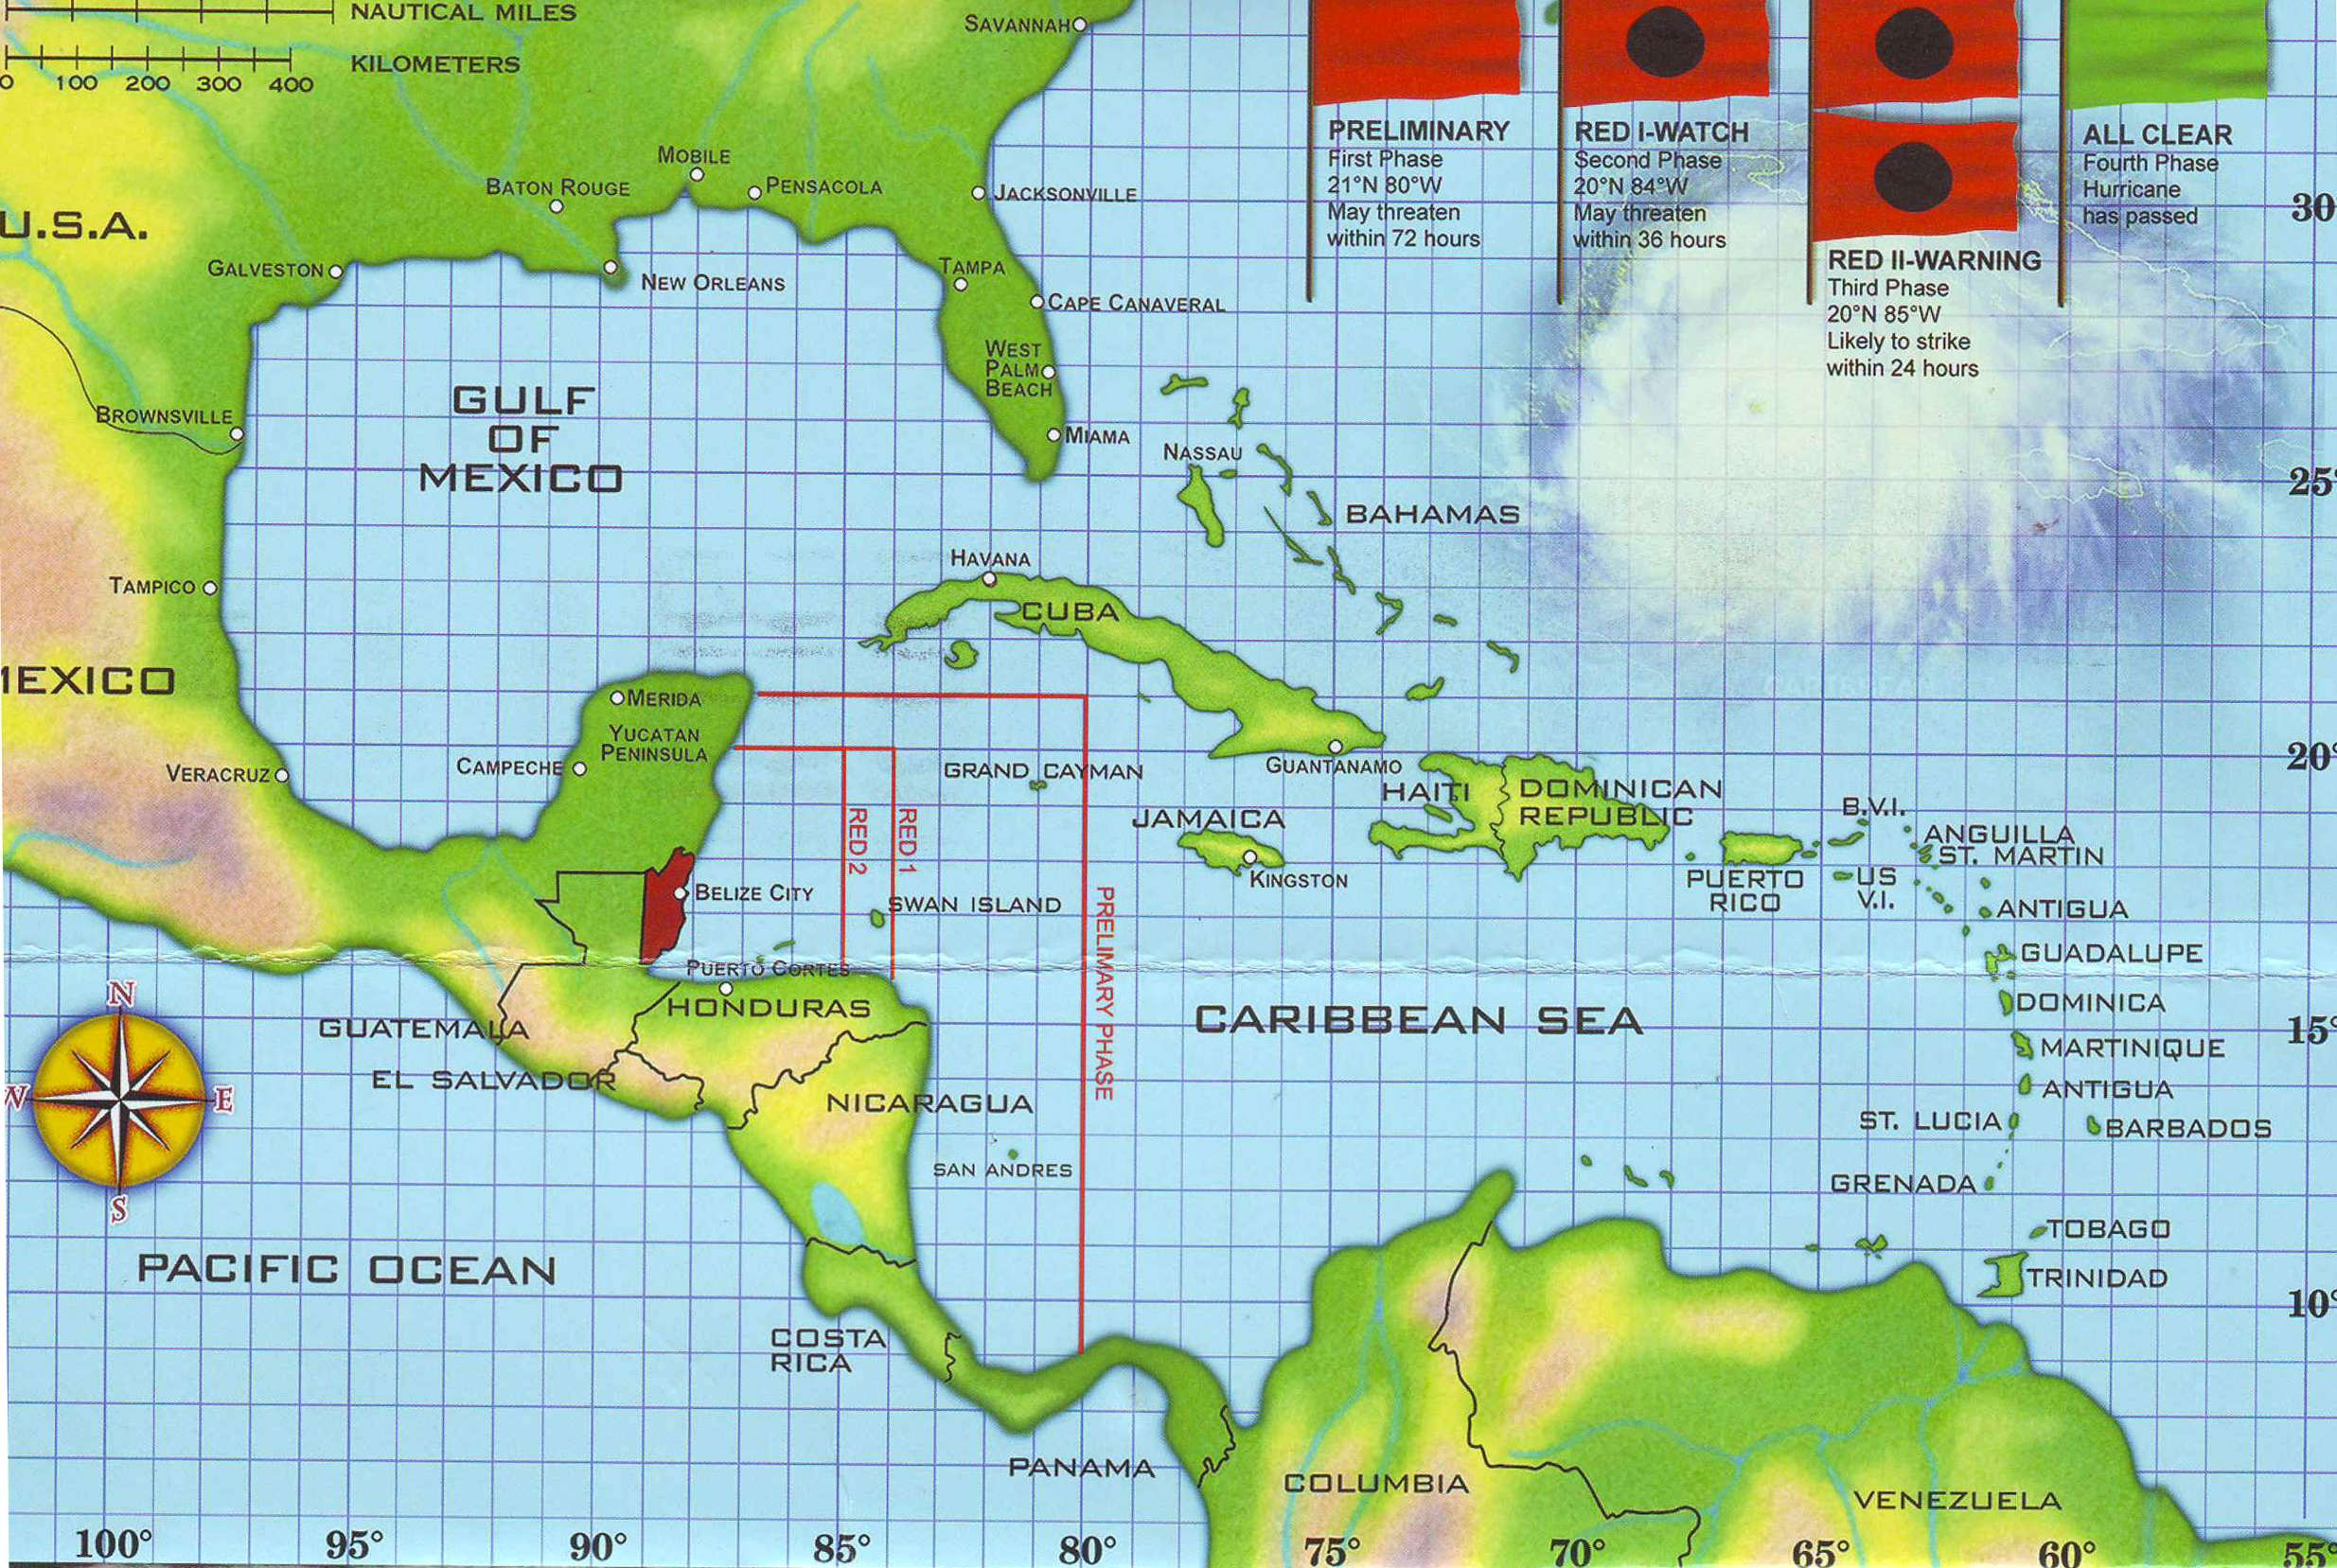 belize location on world map